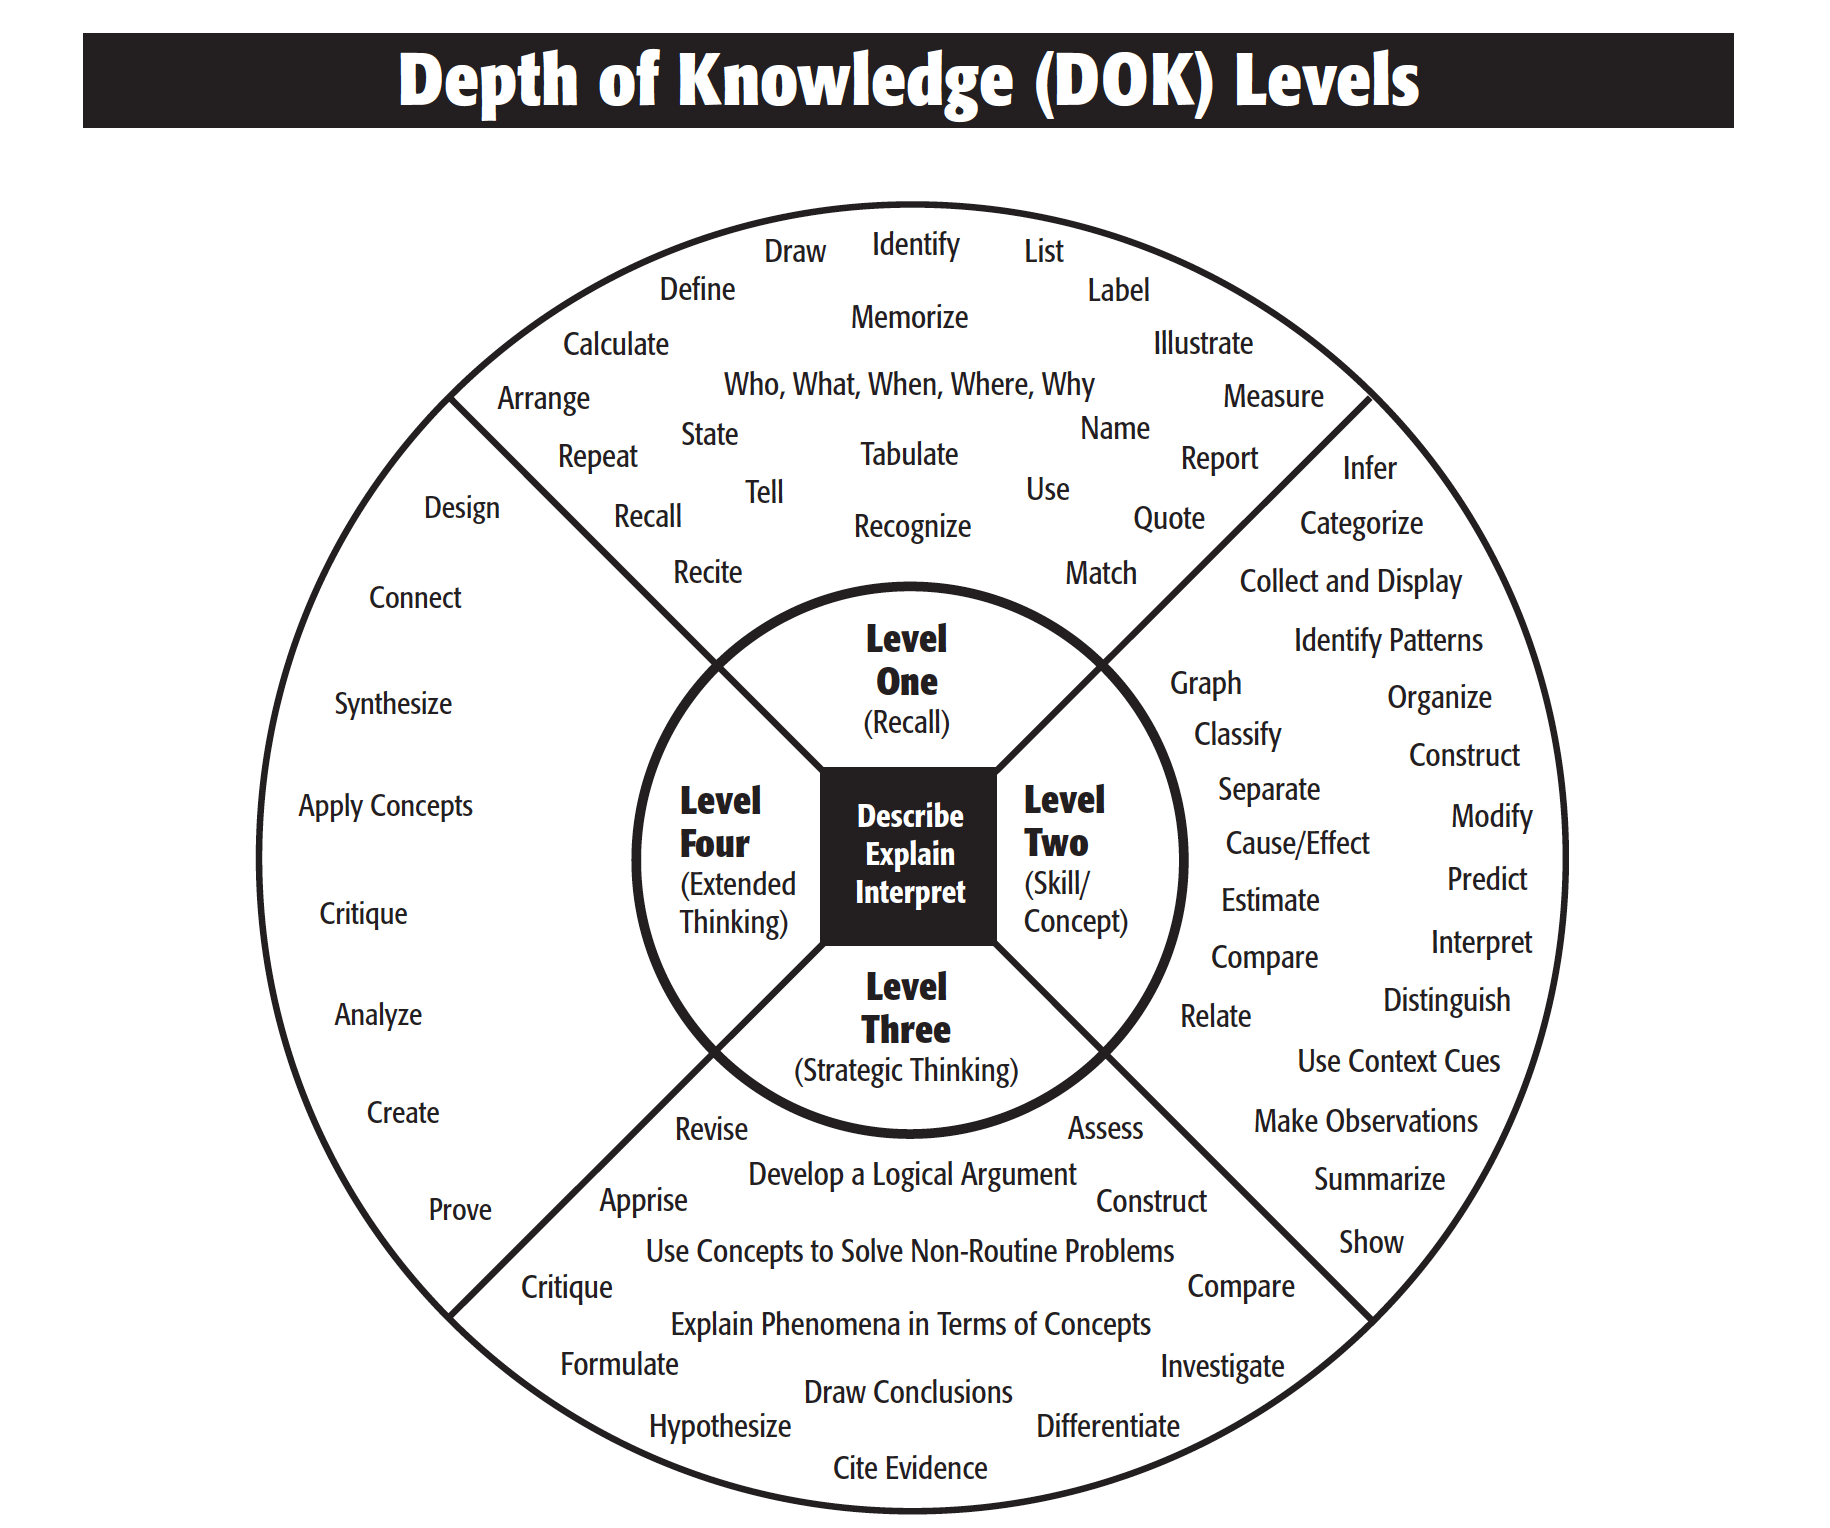 Integrating Cognitive Rigor with Webb's Depth of Knowledge